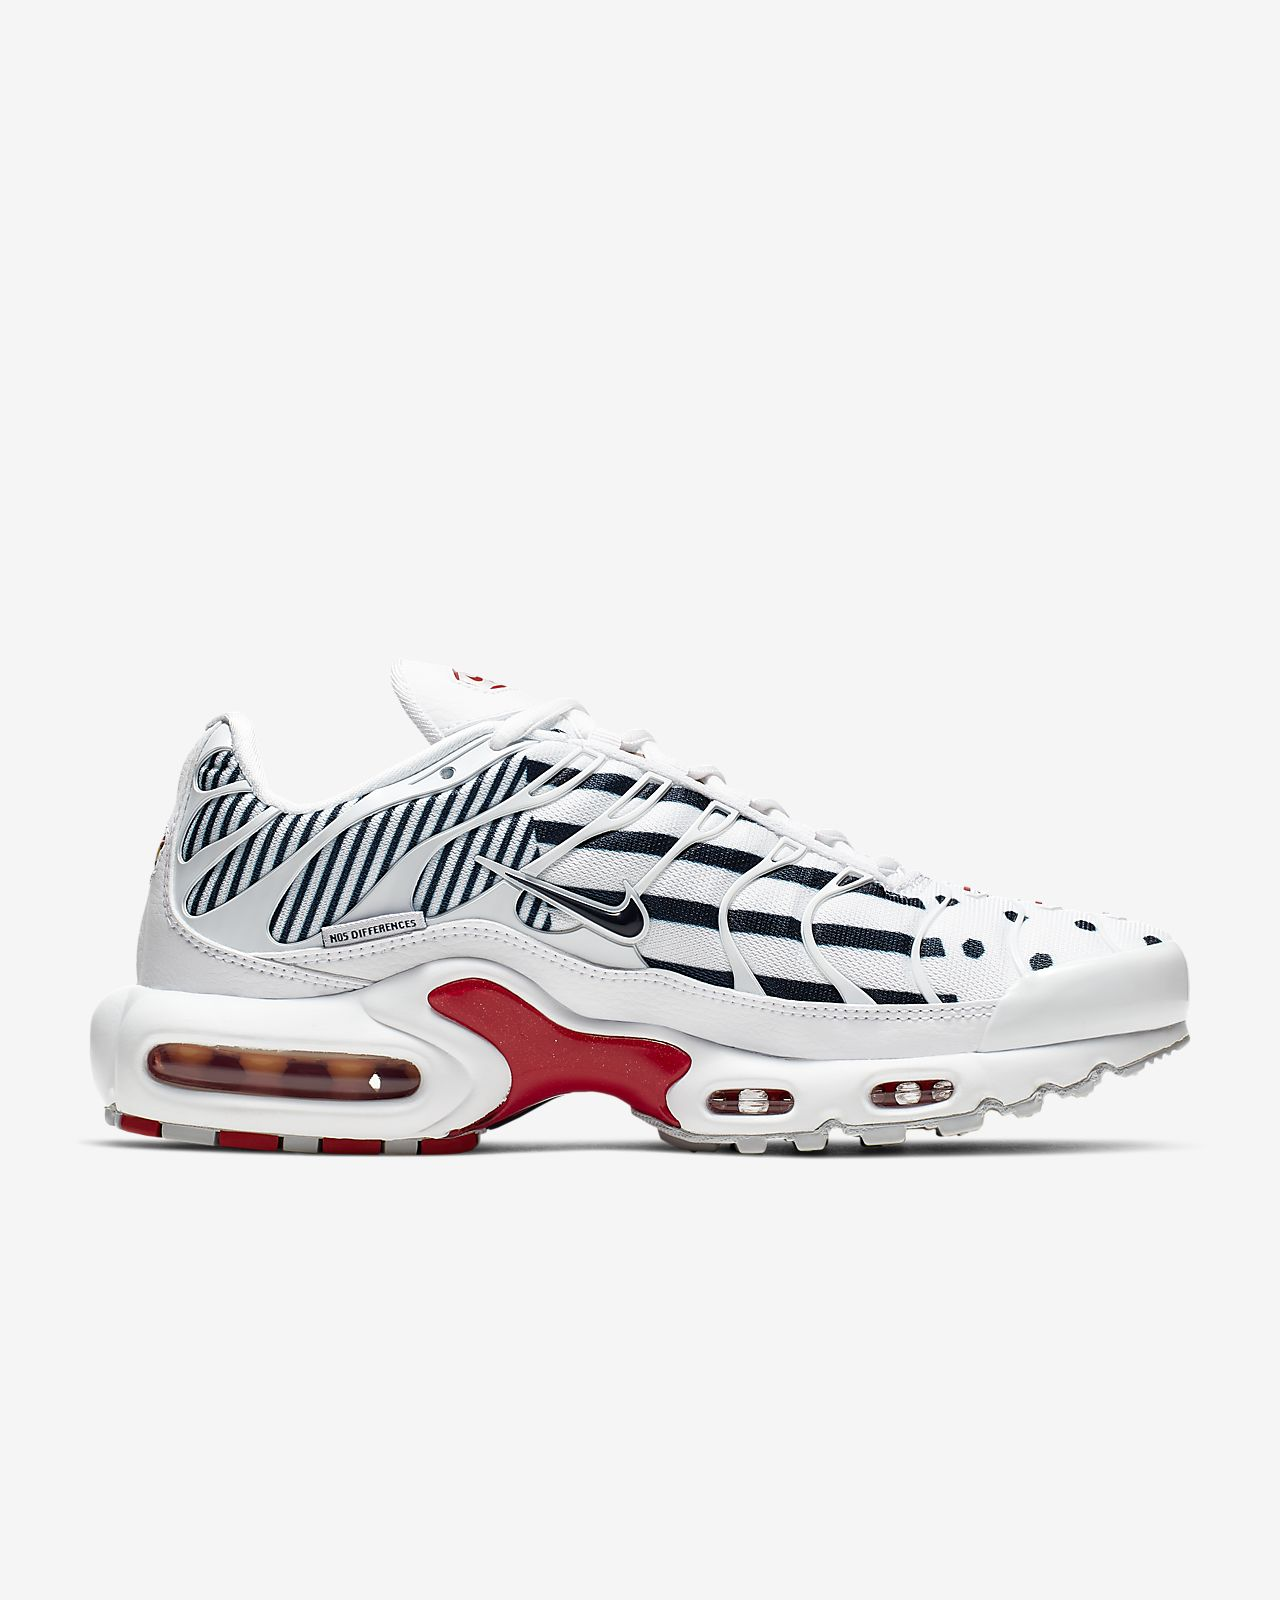 new styles 00d8d d95ac ... Nike Air Max Plus TN Unité Totale Women s Shoe